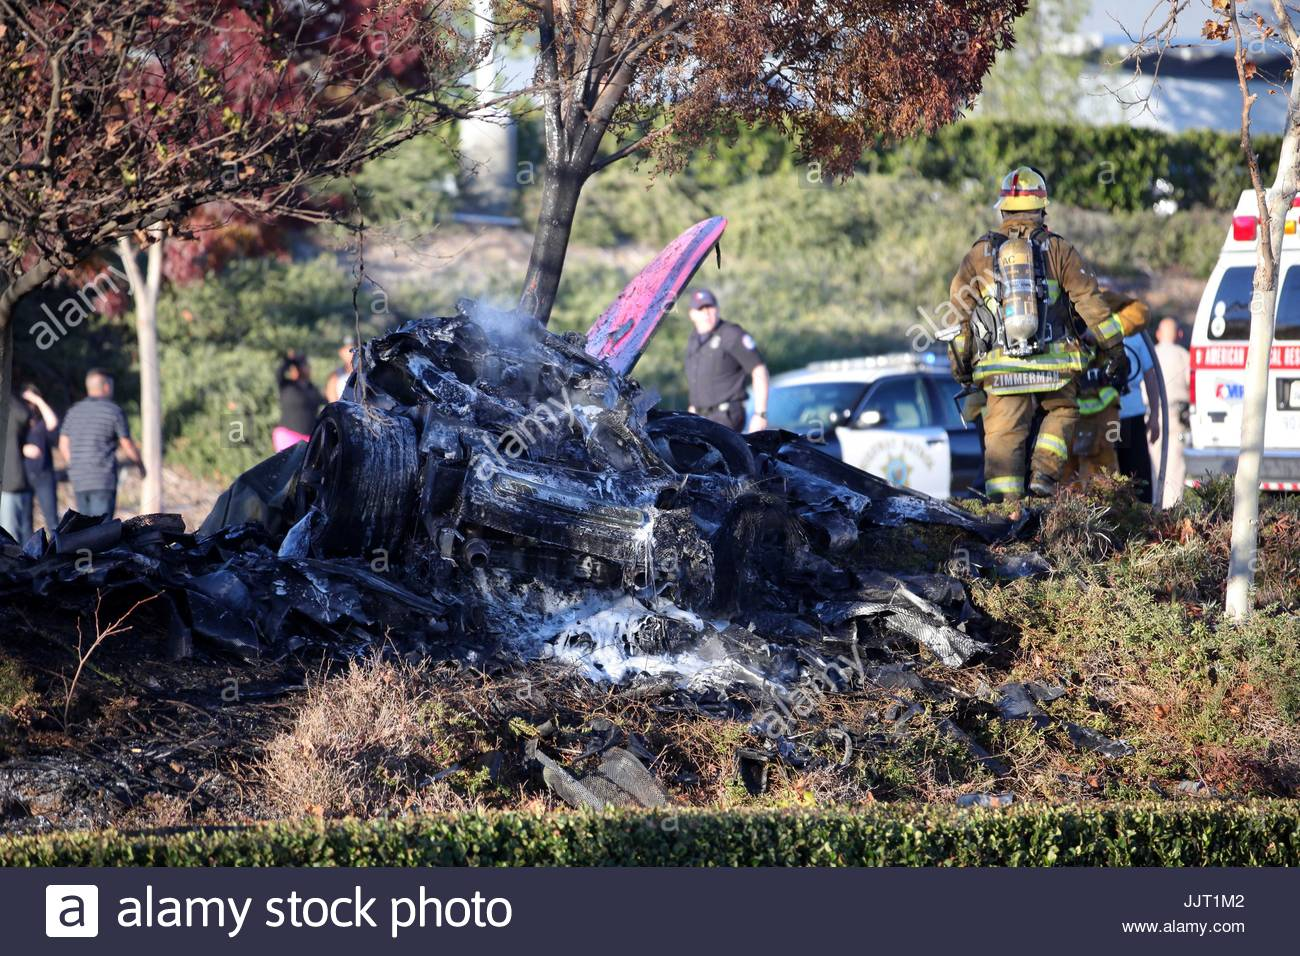 paul walker crash scene the aftermath of the tragic car crash that stock photo royalty free. Black Bedroom Furniture Sets. Home Design Ideas